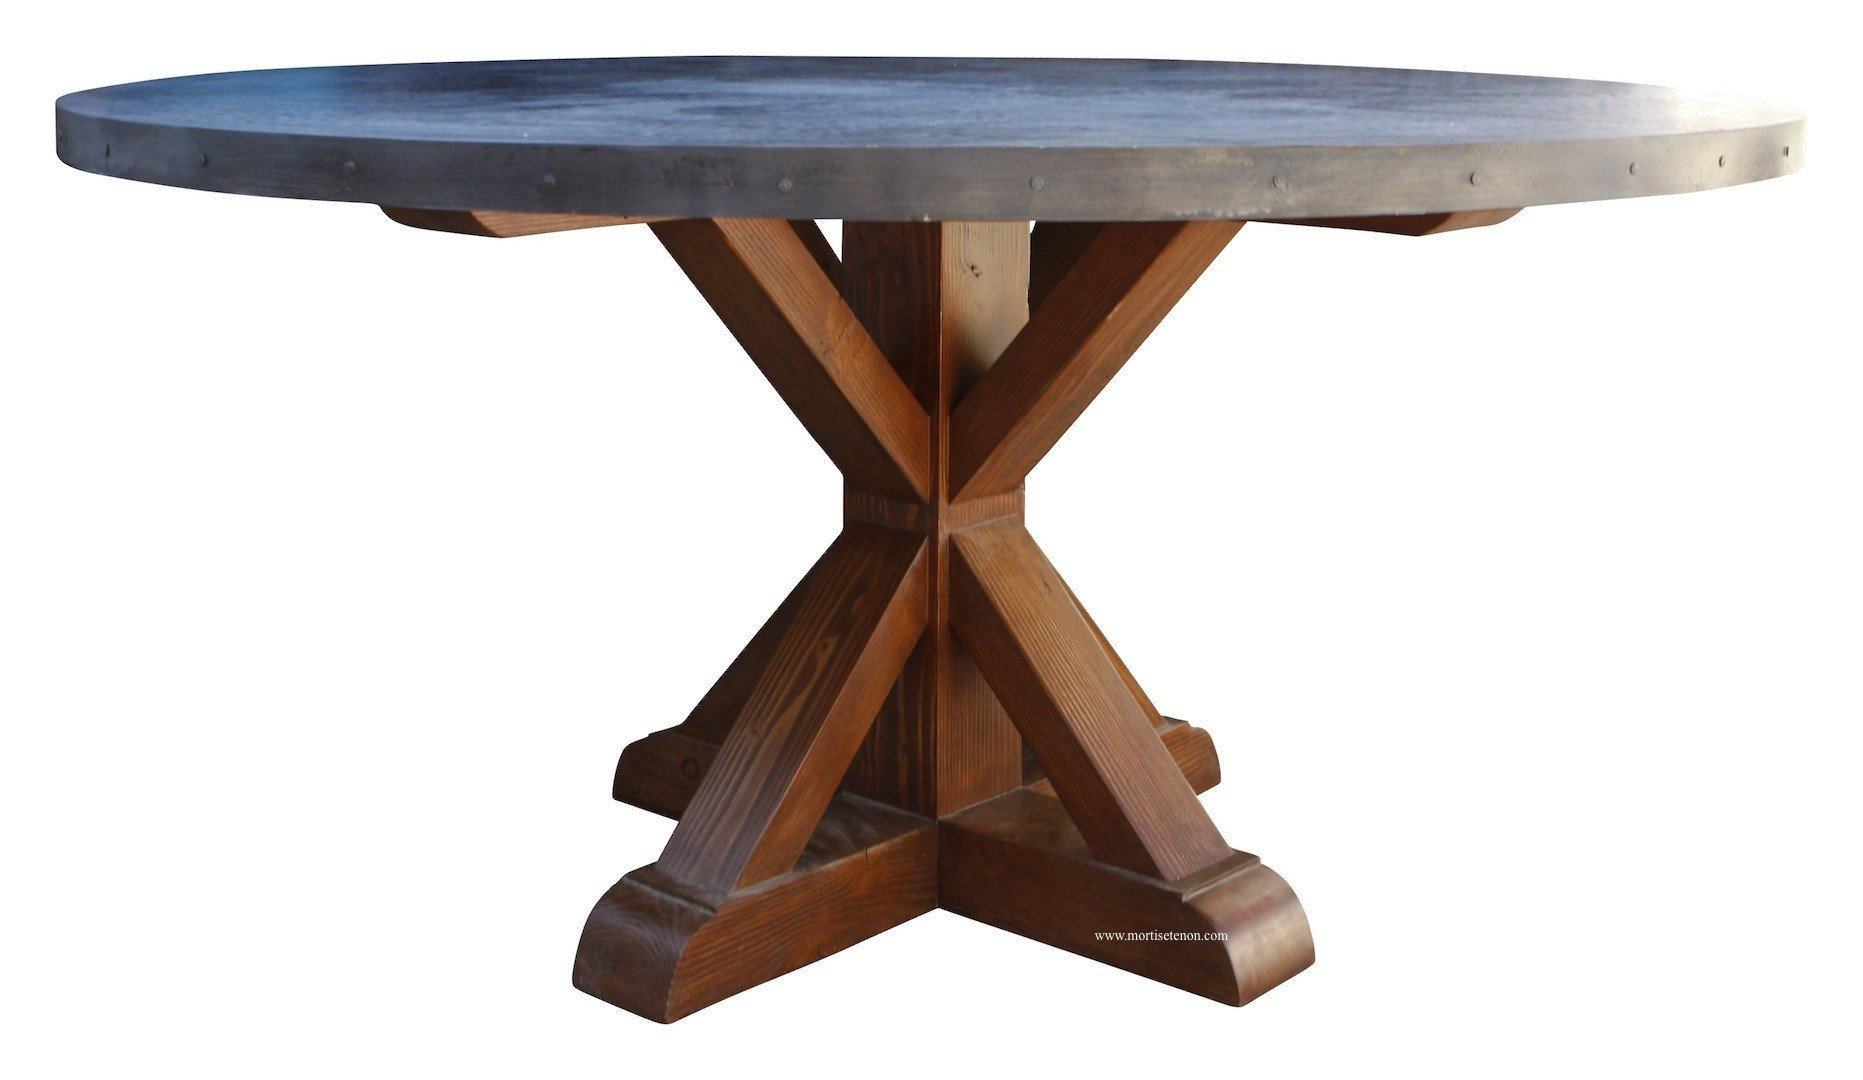 dining tables mortise tenon round zinc table reclaimed wood base los angeles accent hammered unusual end chest cherry side white patio target living room design vintage telephone